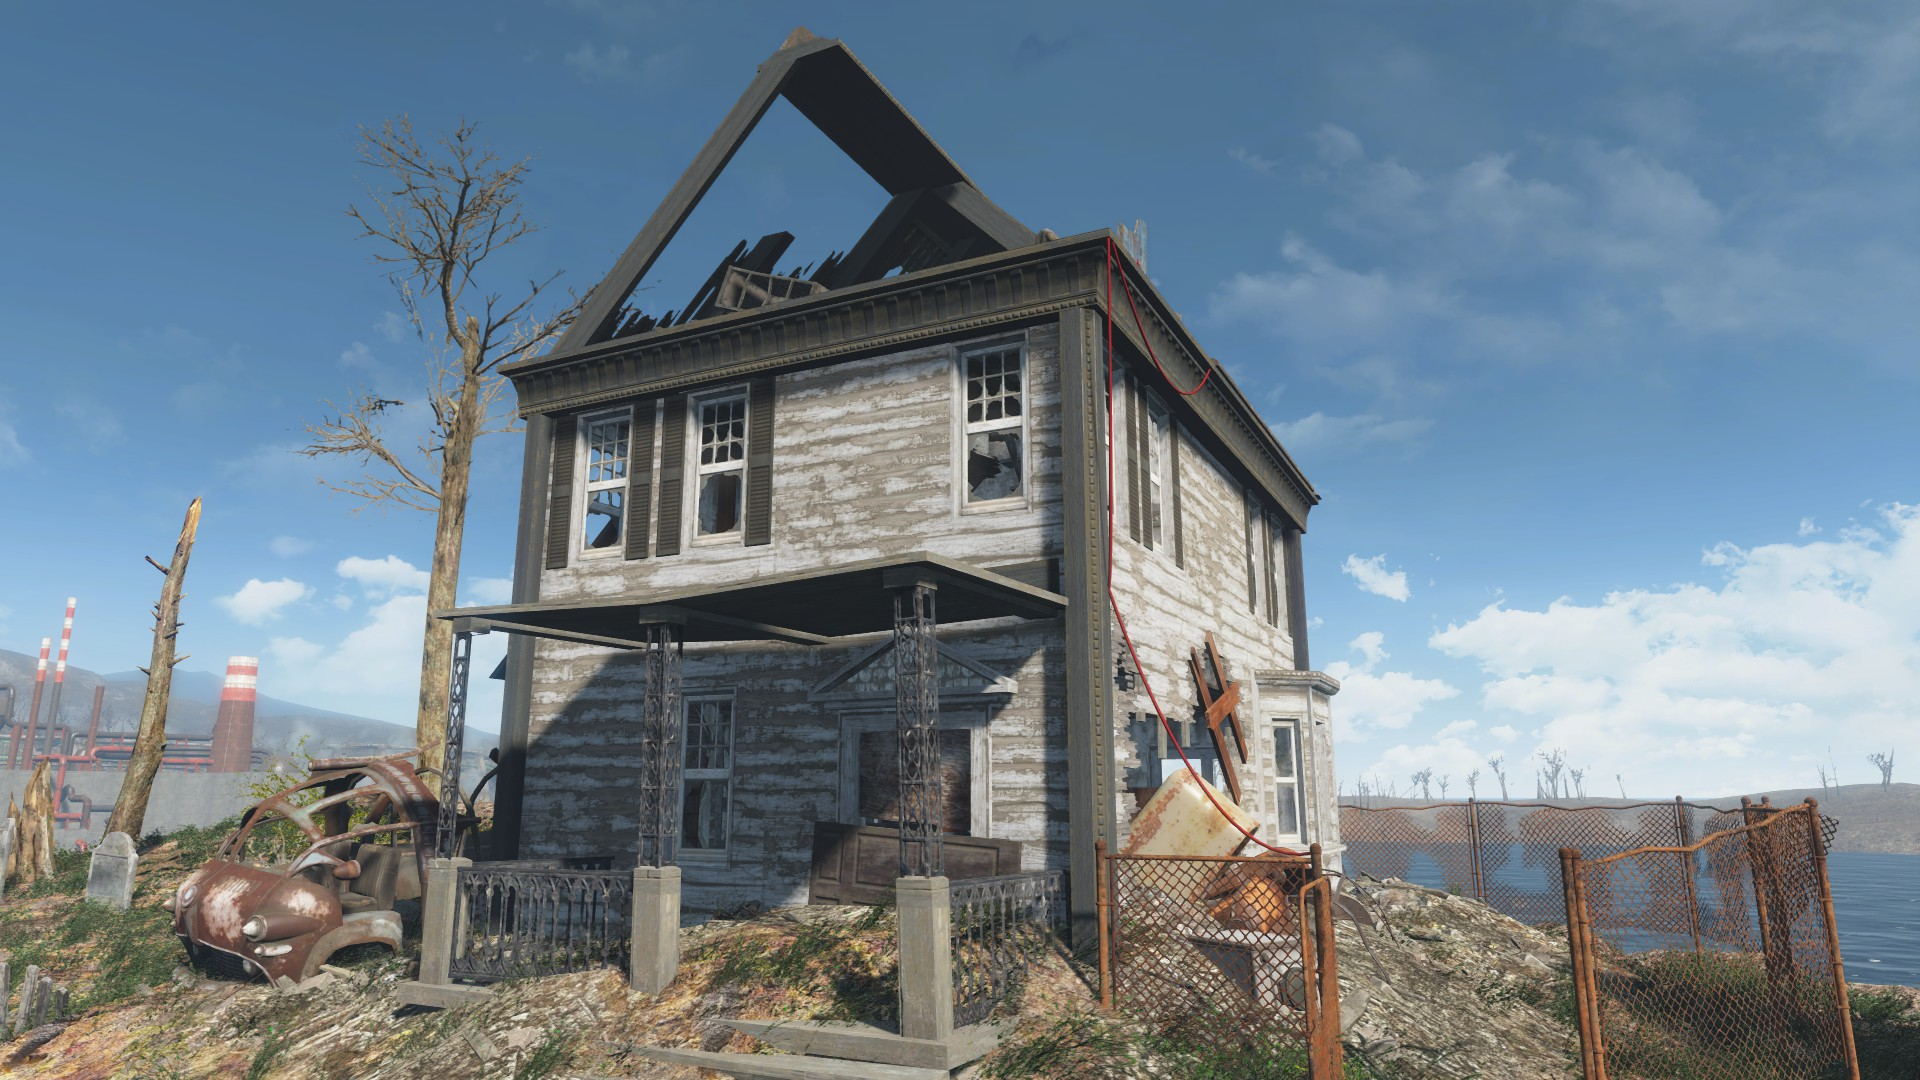 Rook Family House Fallout Wiki Fandom Powered By Wikia